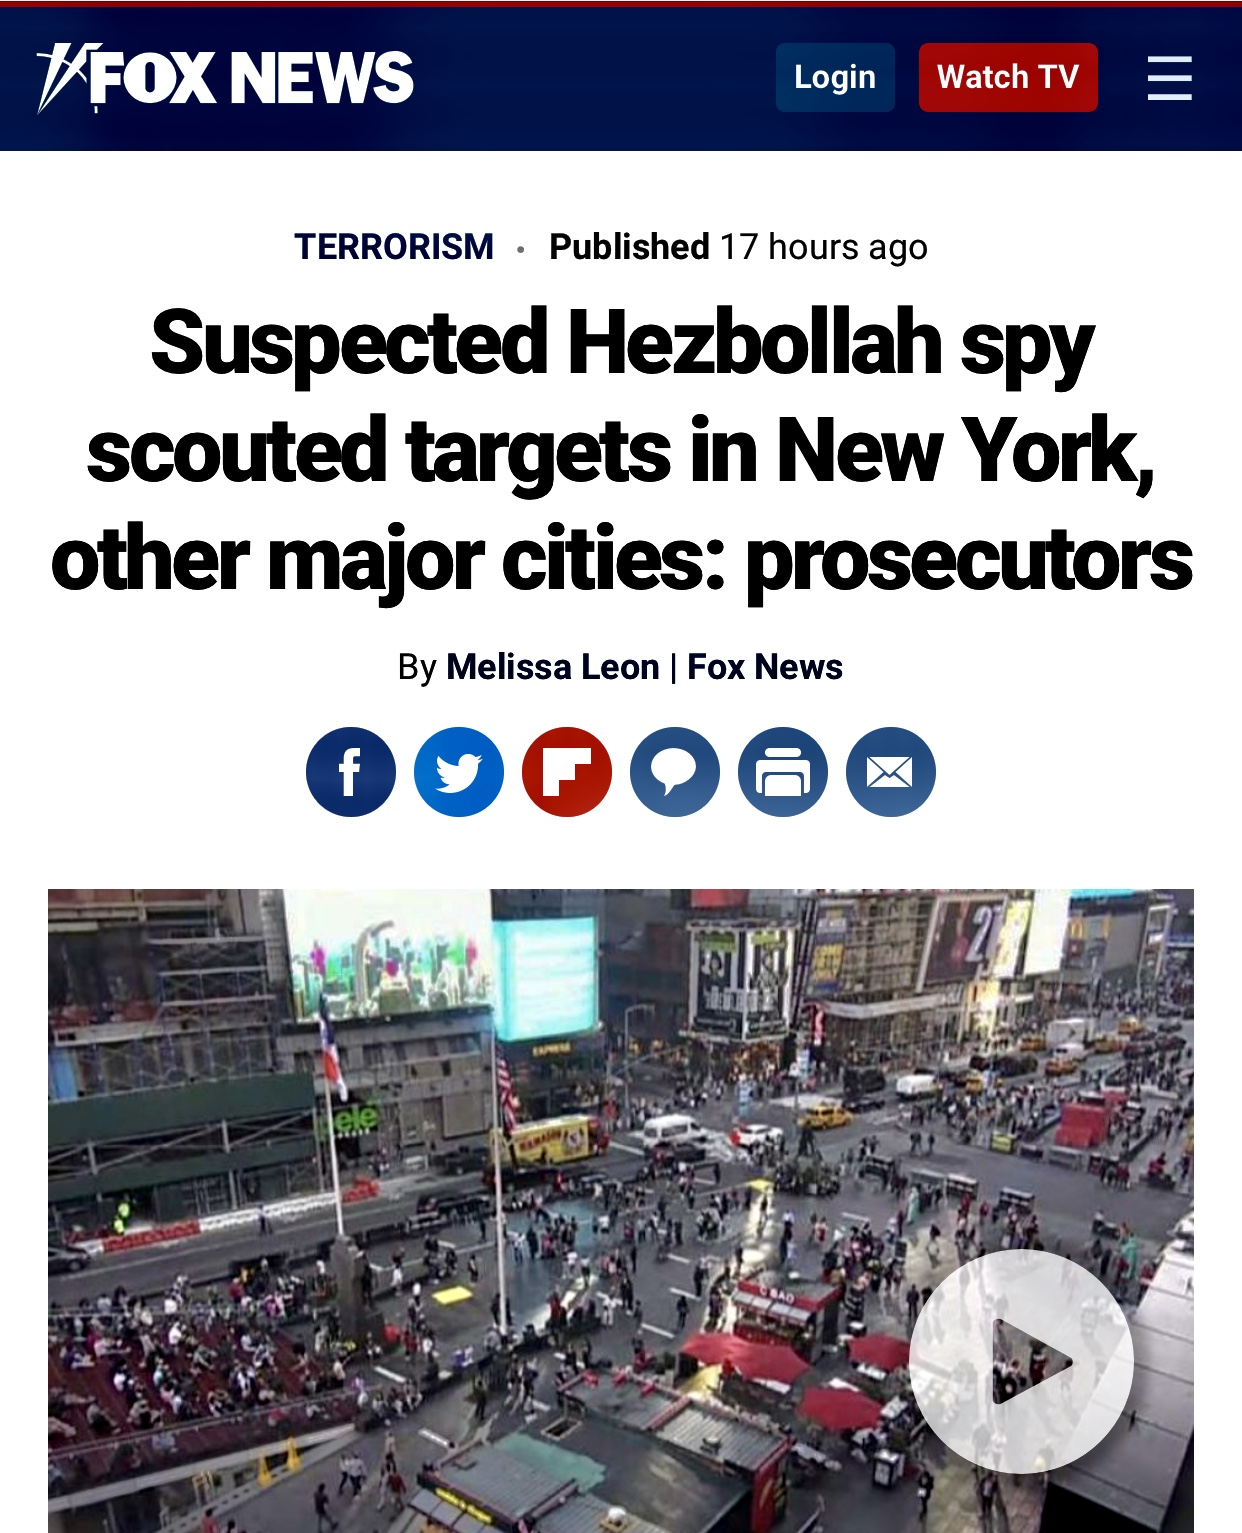 Suspected Hezbollah spy scouted targets in NY, other major cities